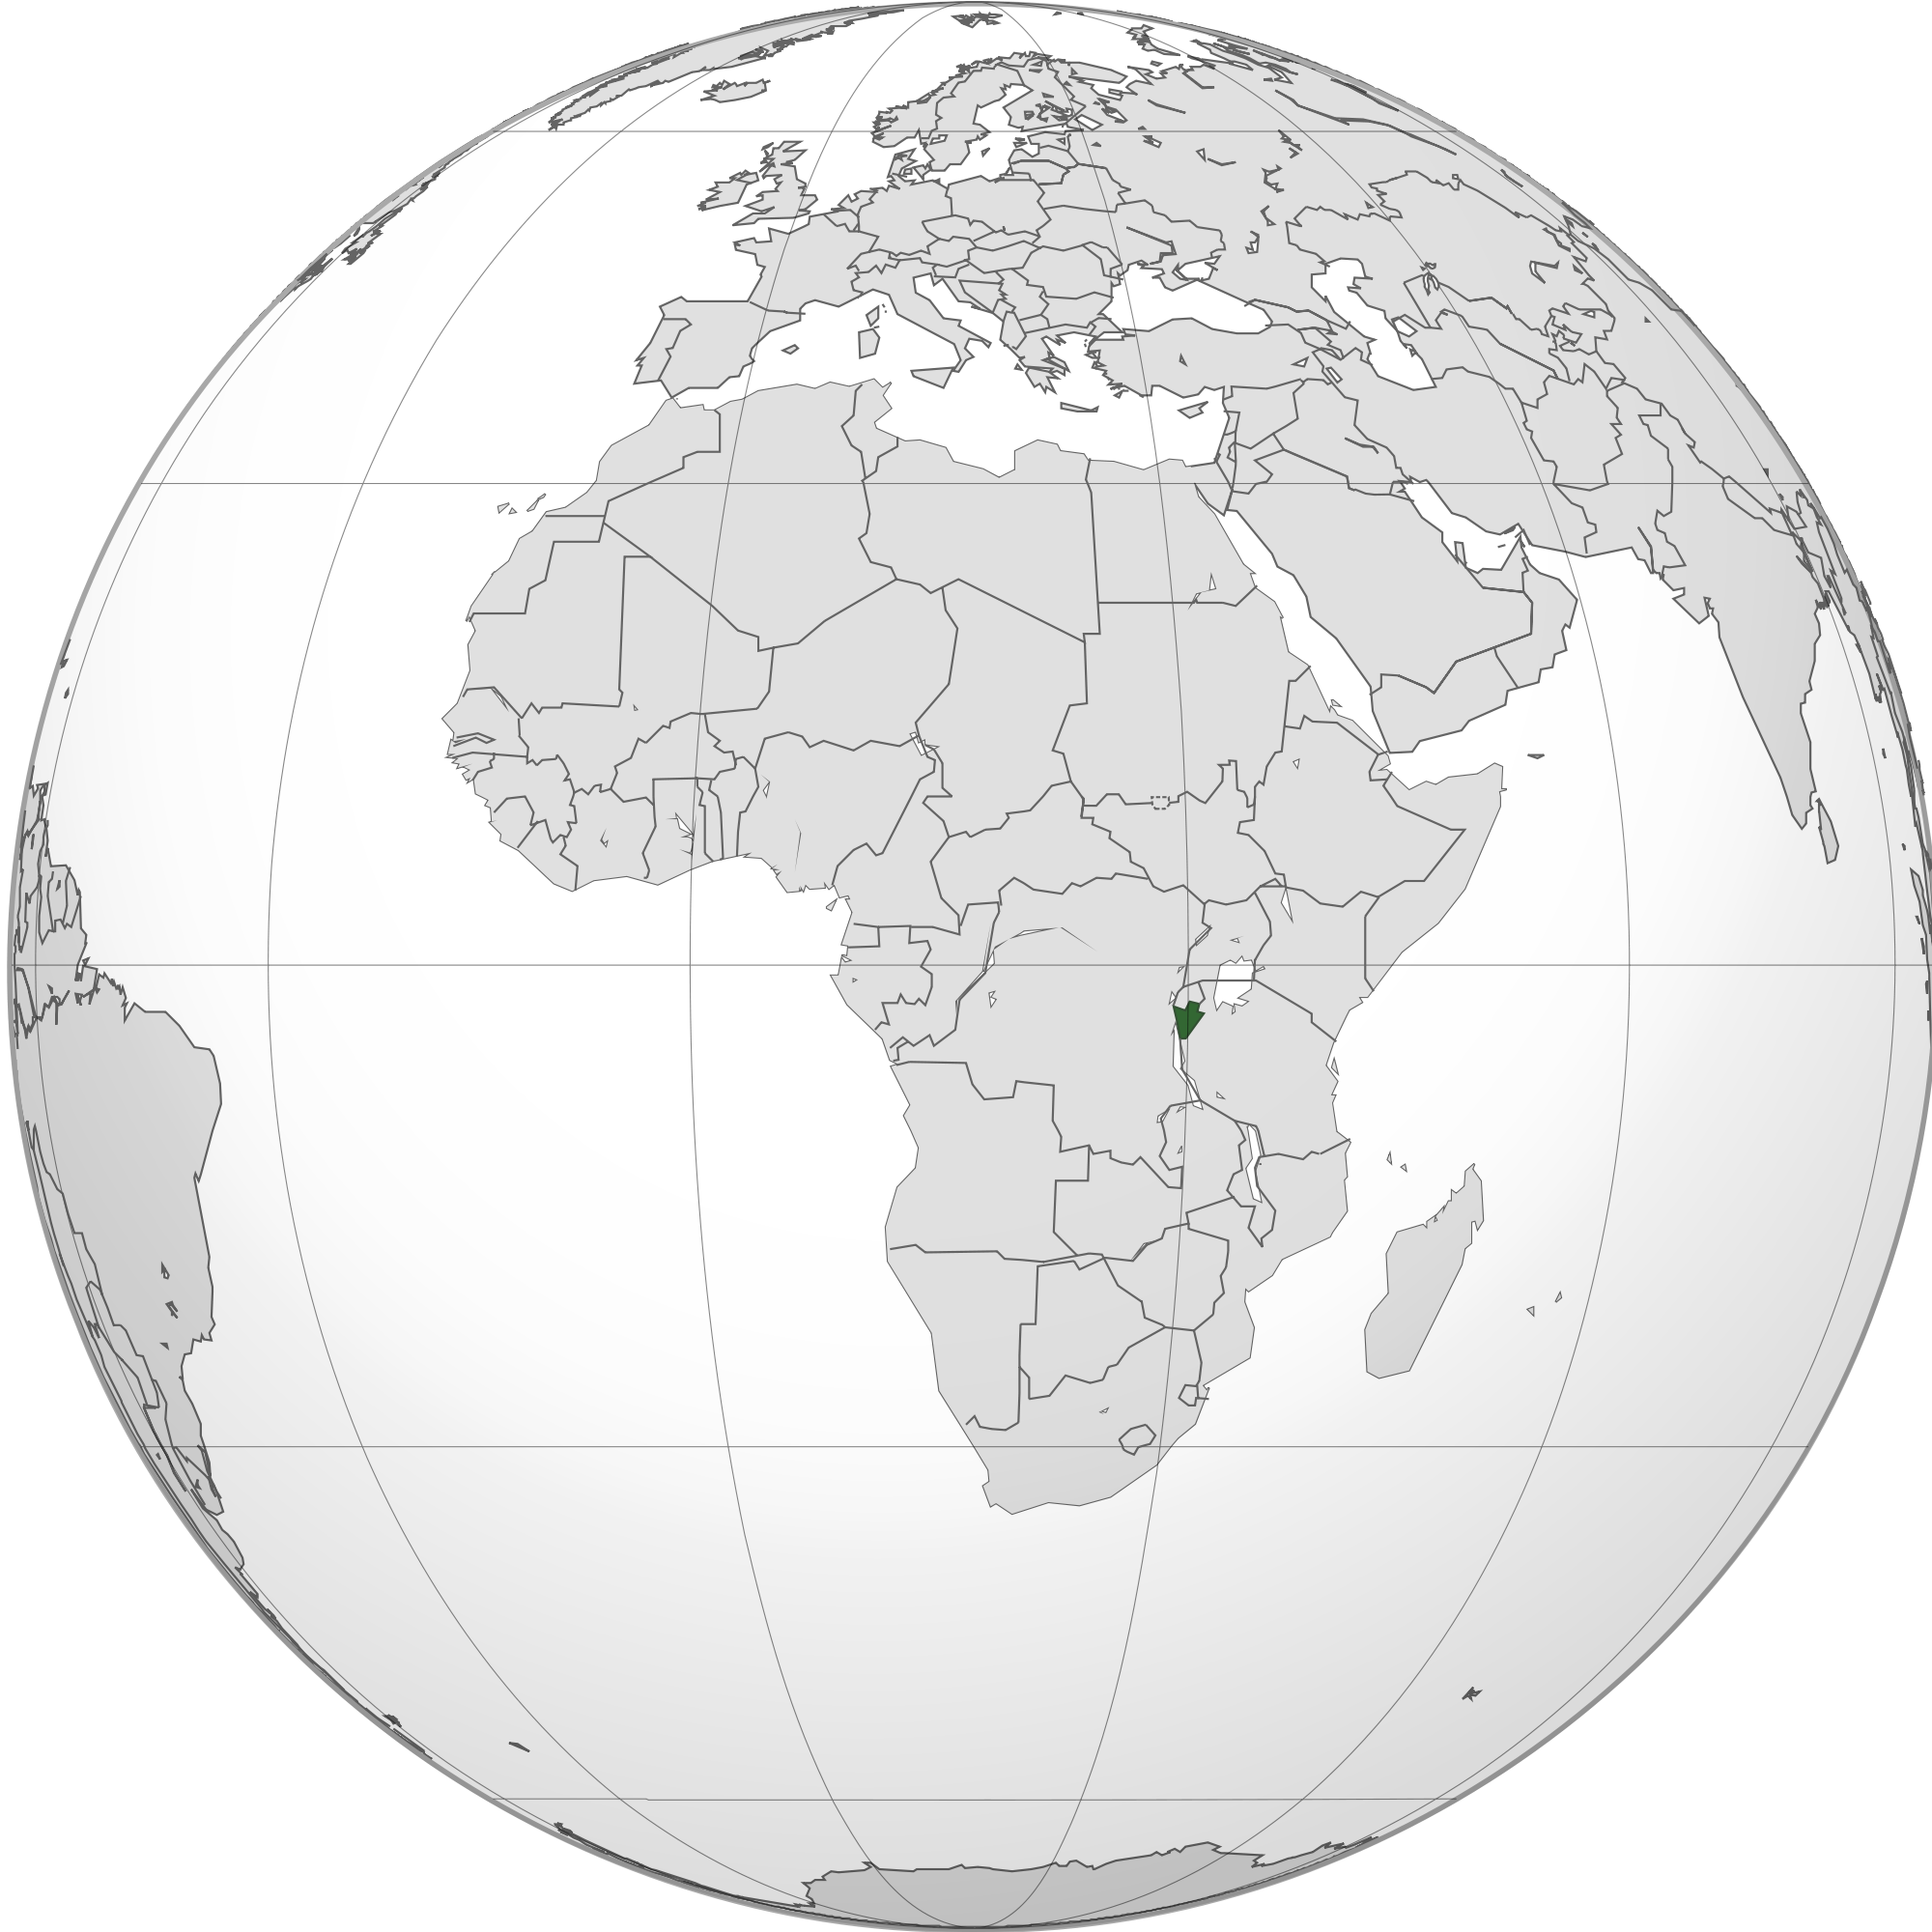 Location Of The Burundi In The World Map - Where is burundi on a world map